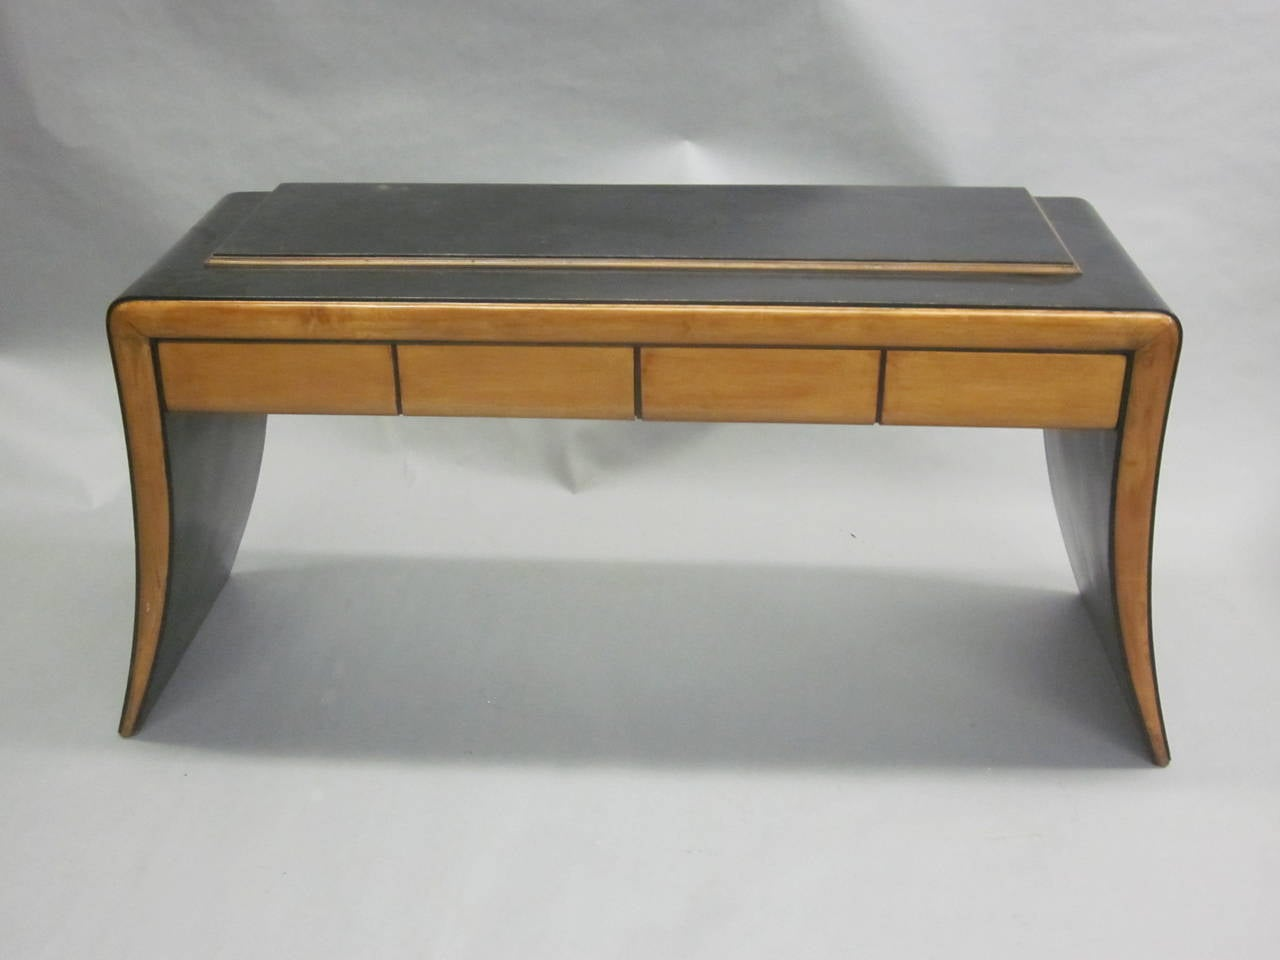 Italian Mid-Century Modern Neoclassical Vanity / Sofa Table by Paolo Buffa, 1930 3